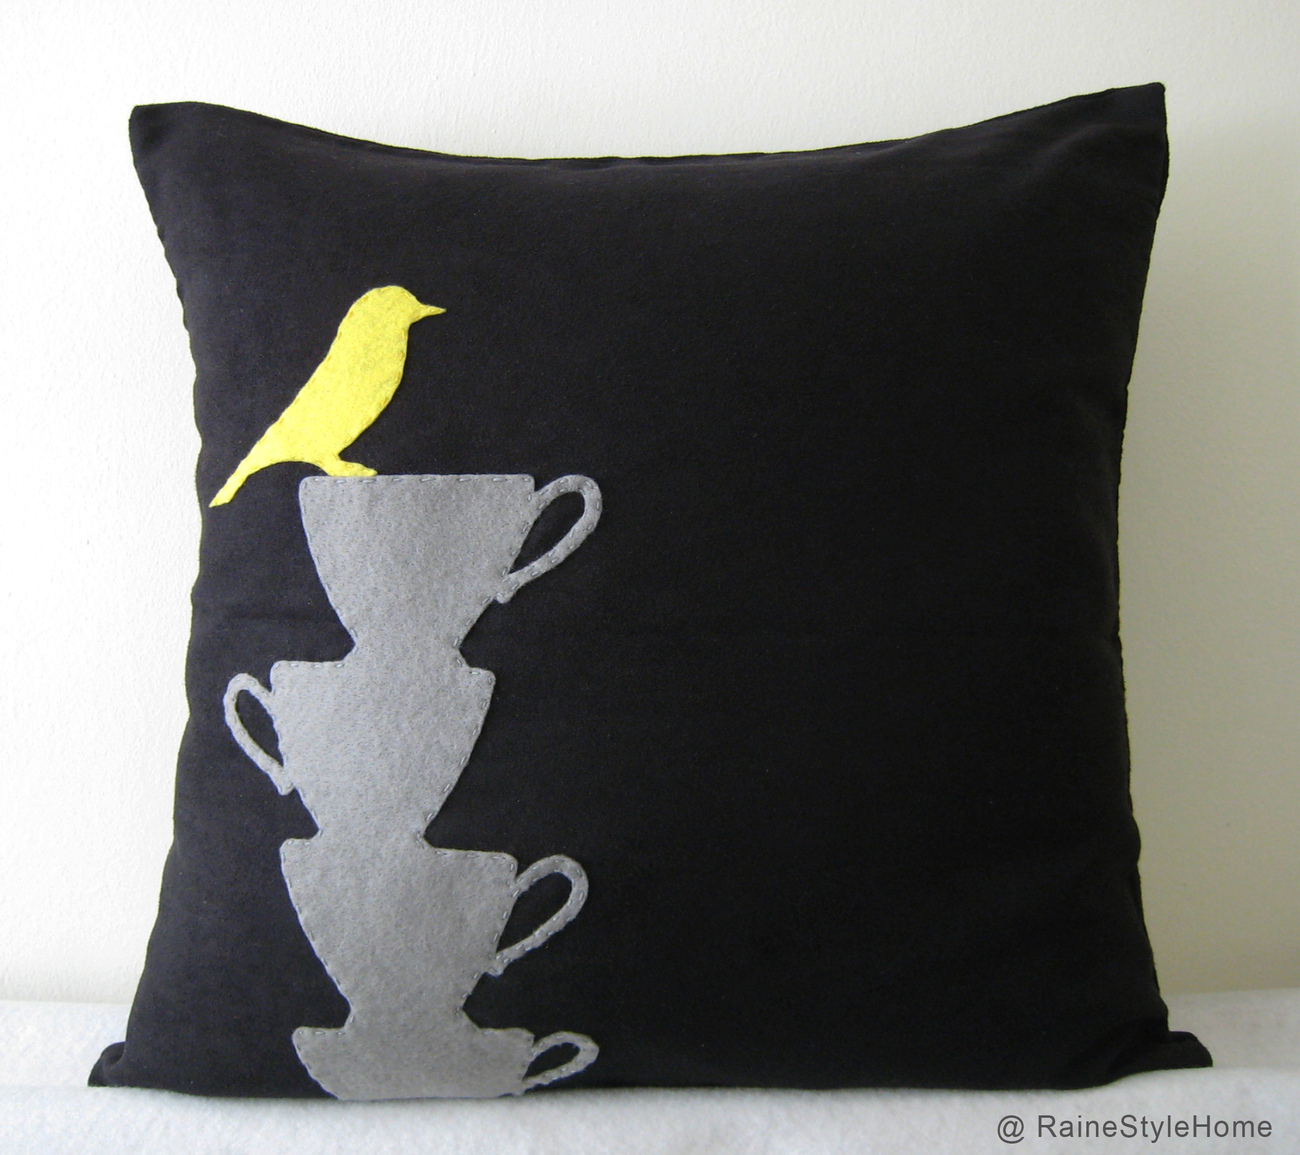 Yellow Bird Resting On Teacups Black Pillow Cover. Tea Time